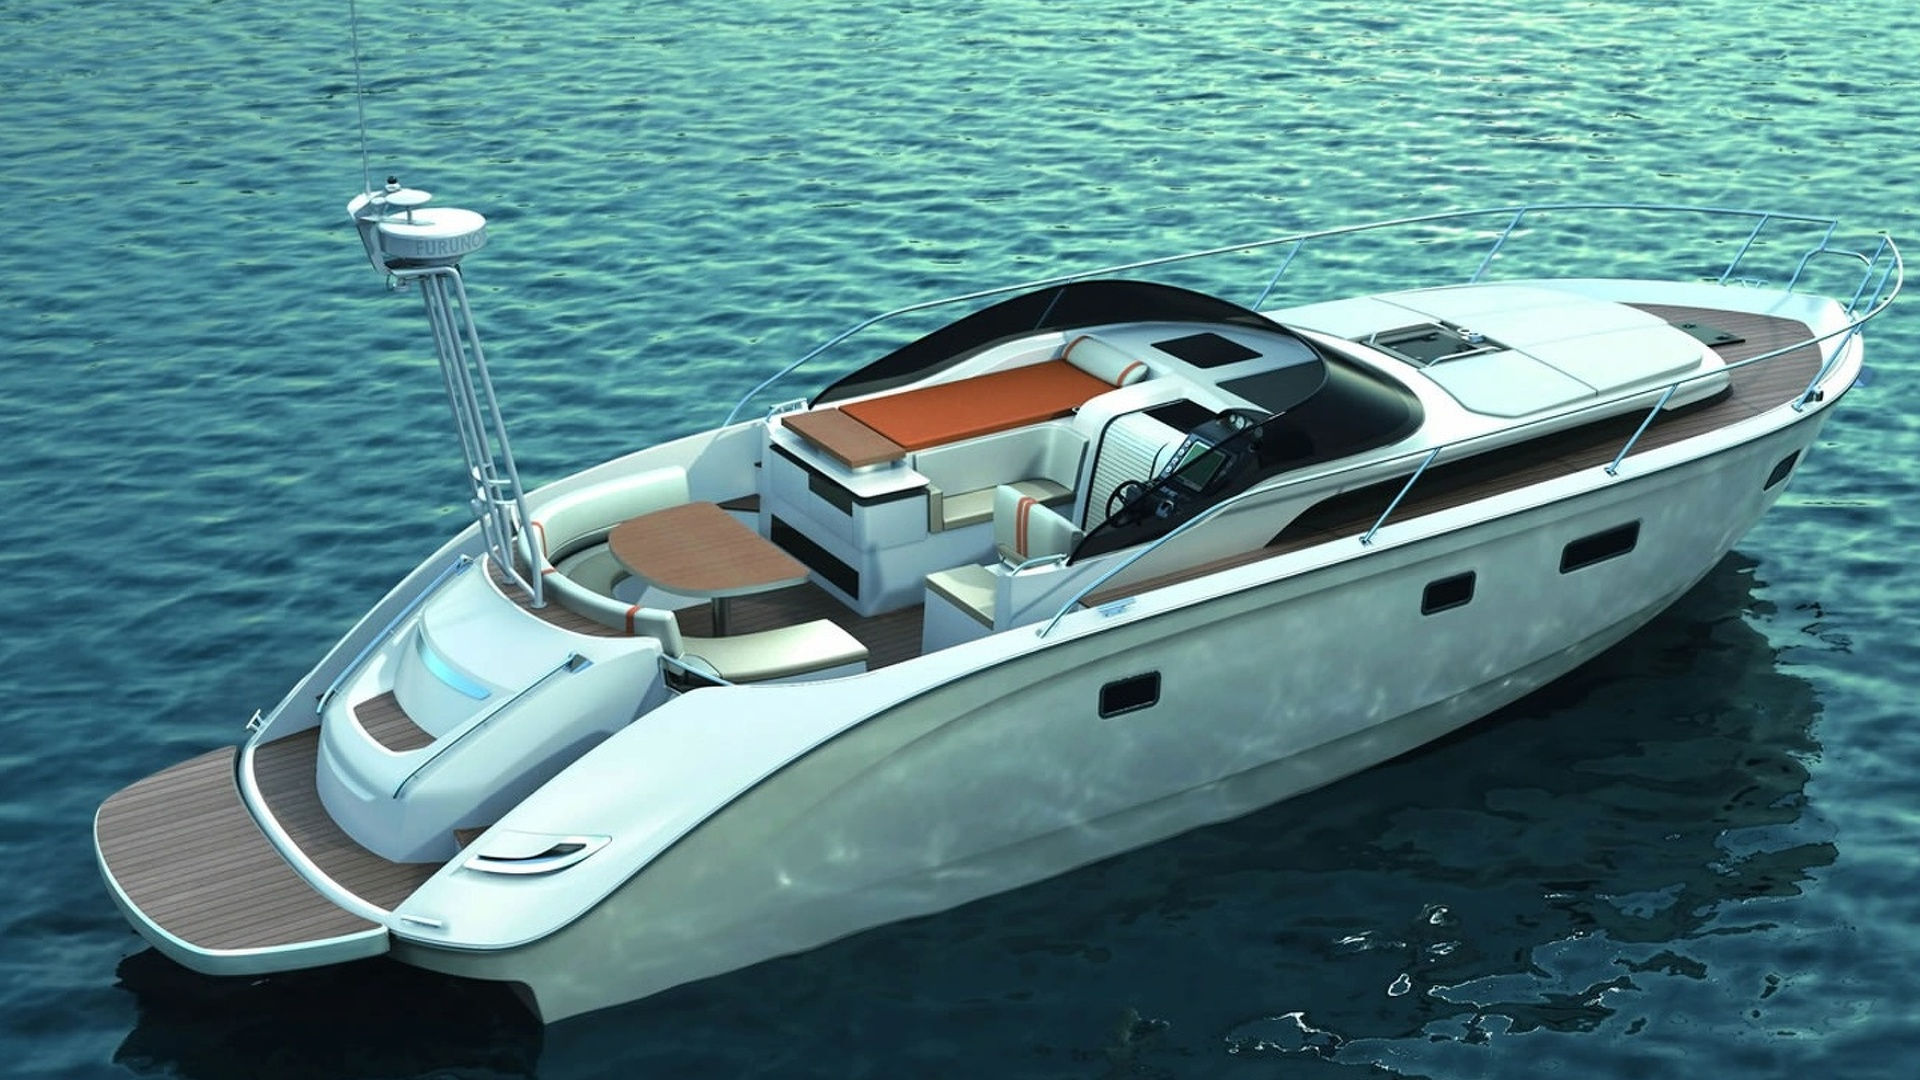 BMW Designed *BAVARIA Deep Blue 46* Presented at Düsseldorf Boat Show